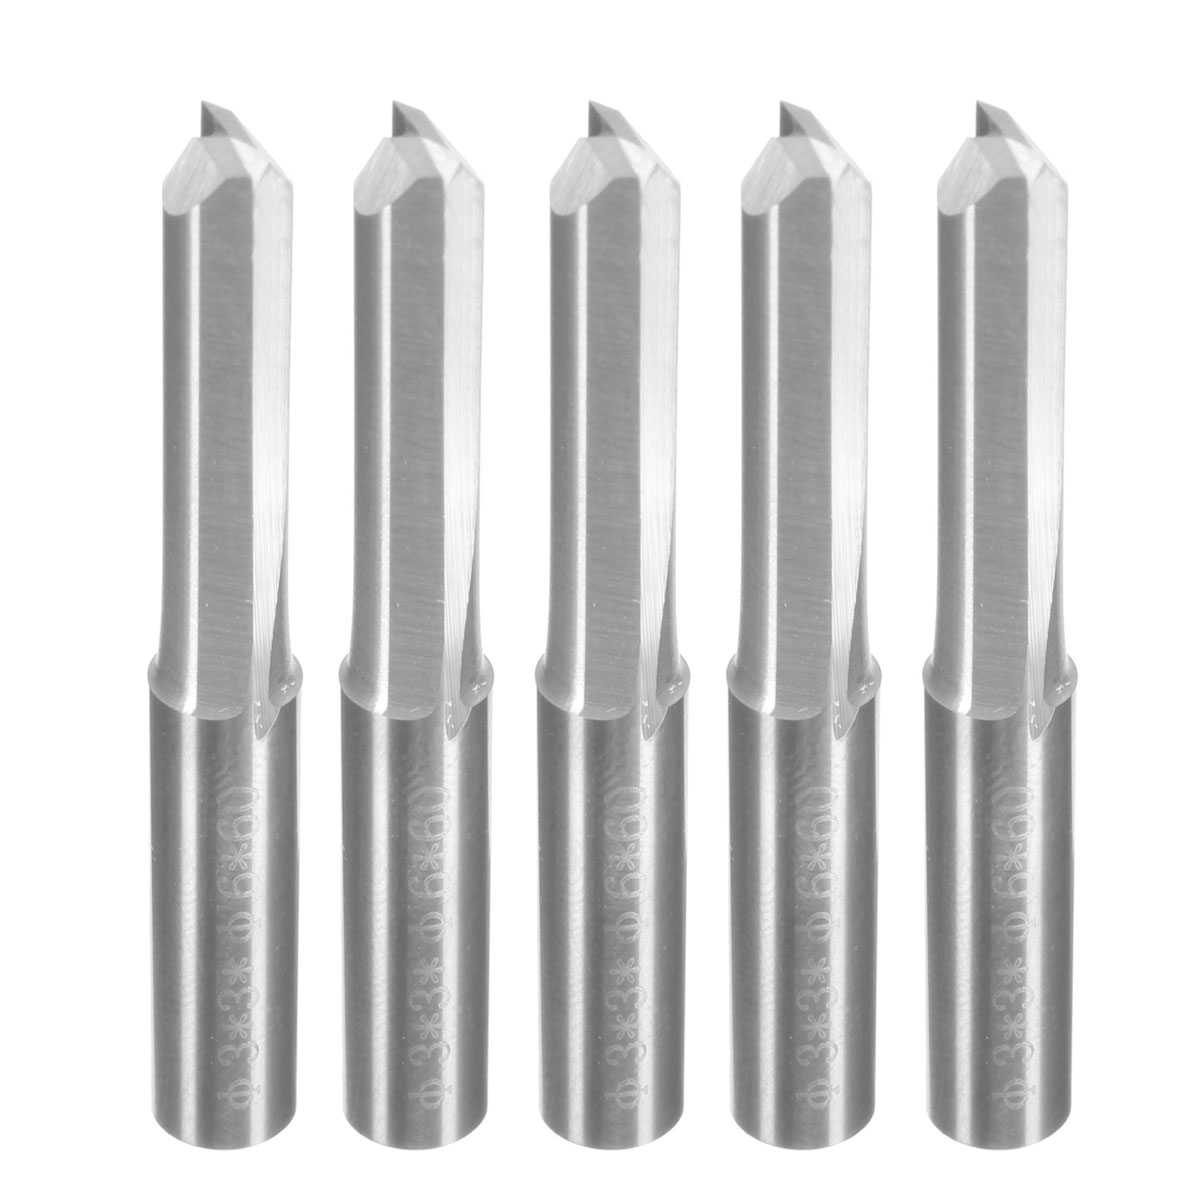 5Pcs/Set 6mm 2 Double Two Flutes Straight Shank CNC Router Bit Straight Grooving End Mill Steel Cutter Tool Milling Tools(China (Mainland))